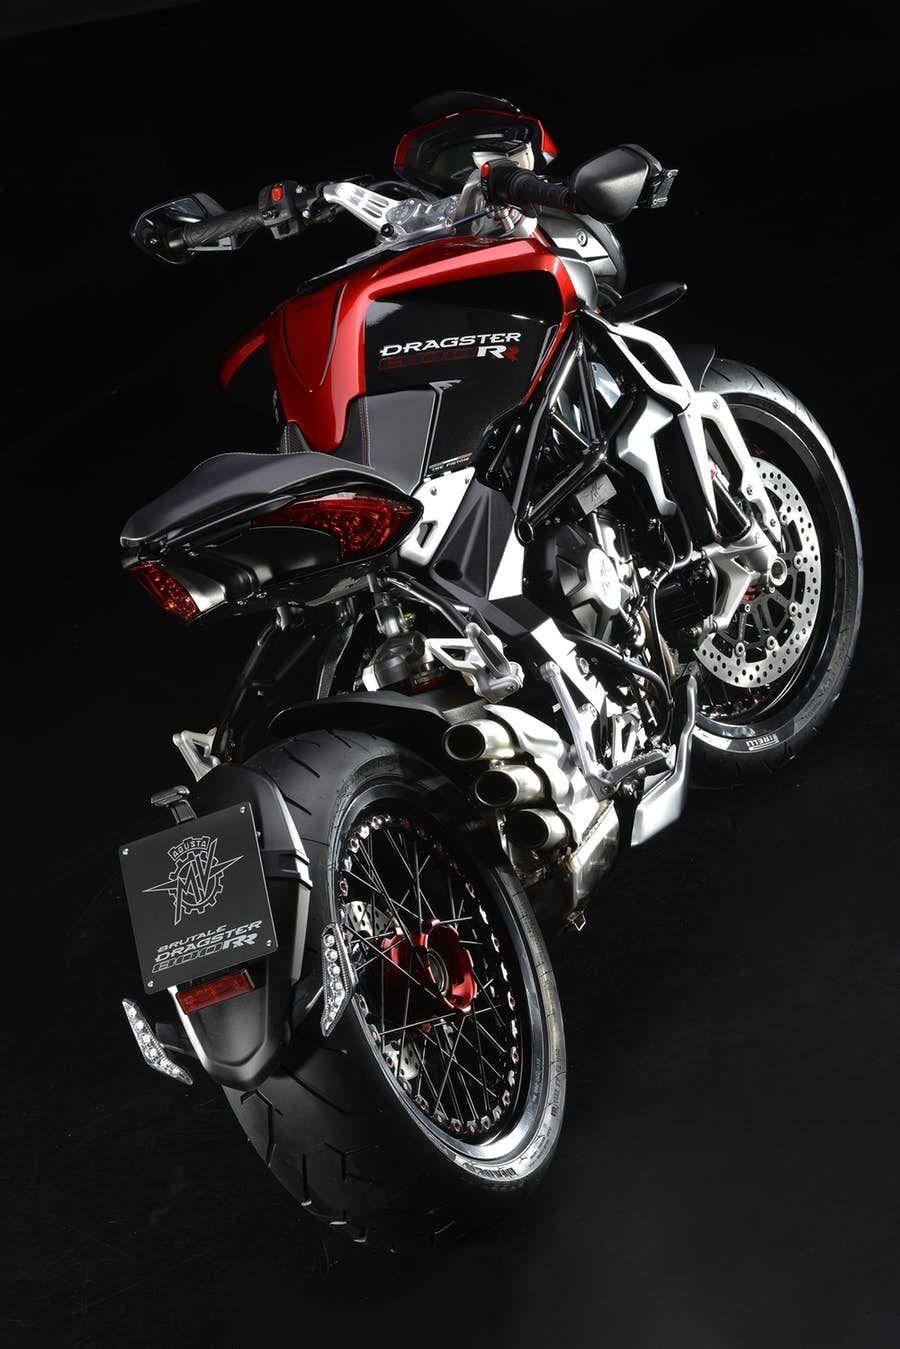 Full Photos And Details Of Mv Agusta Brutale And Dragster 800 Rr